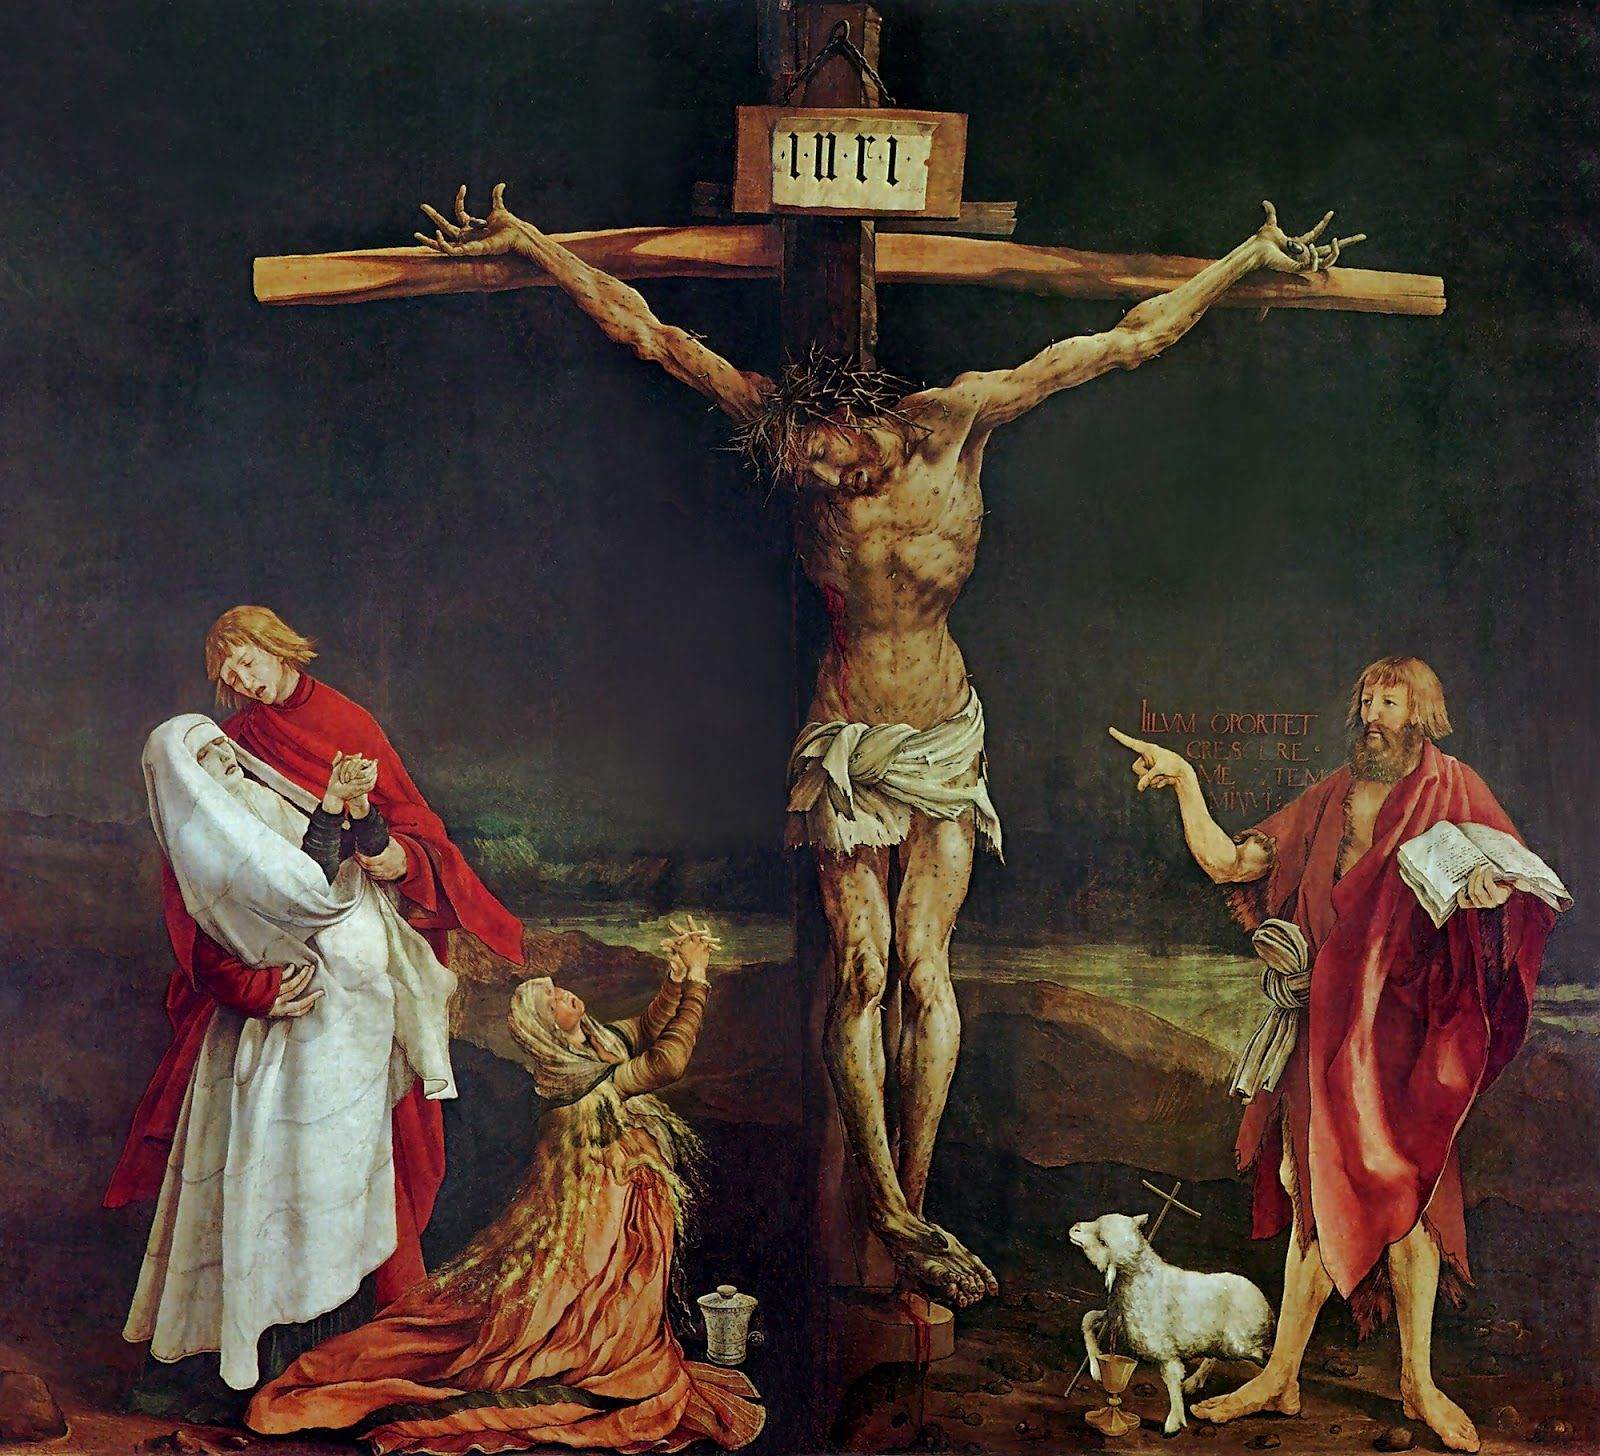 Matthias Grünewald - Crucifixion 1515. 1470-1528. Ignored Renaissance classicism and continued medieval art. German